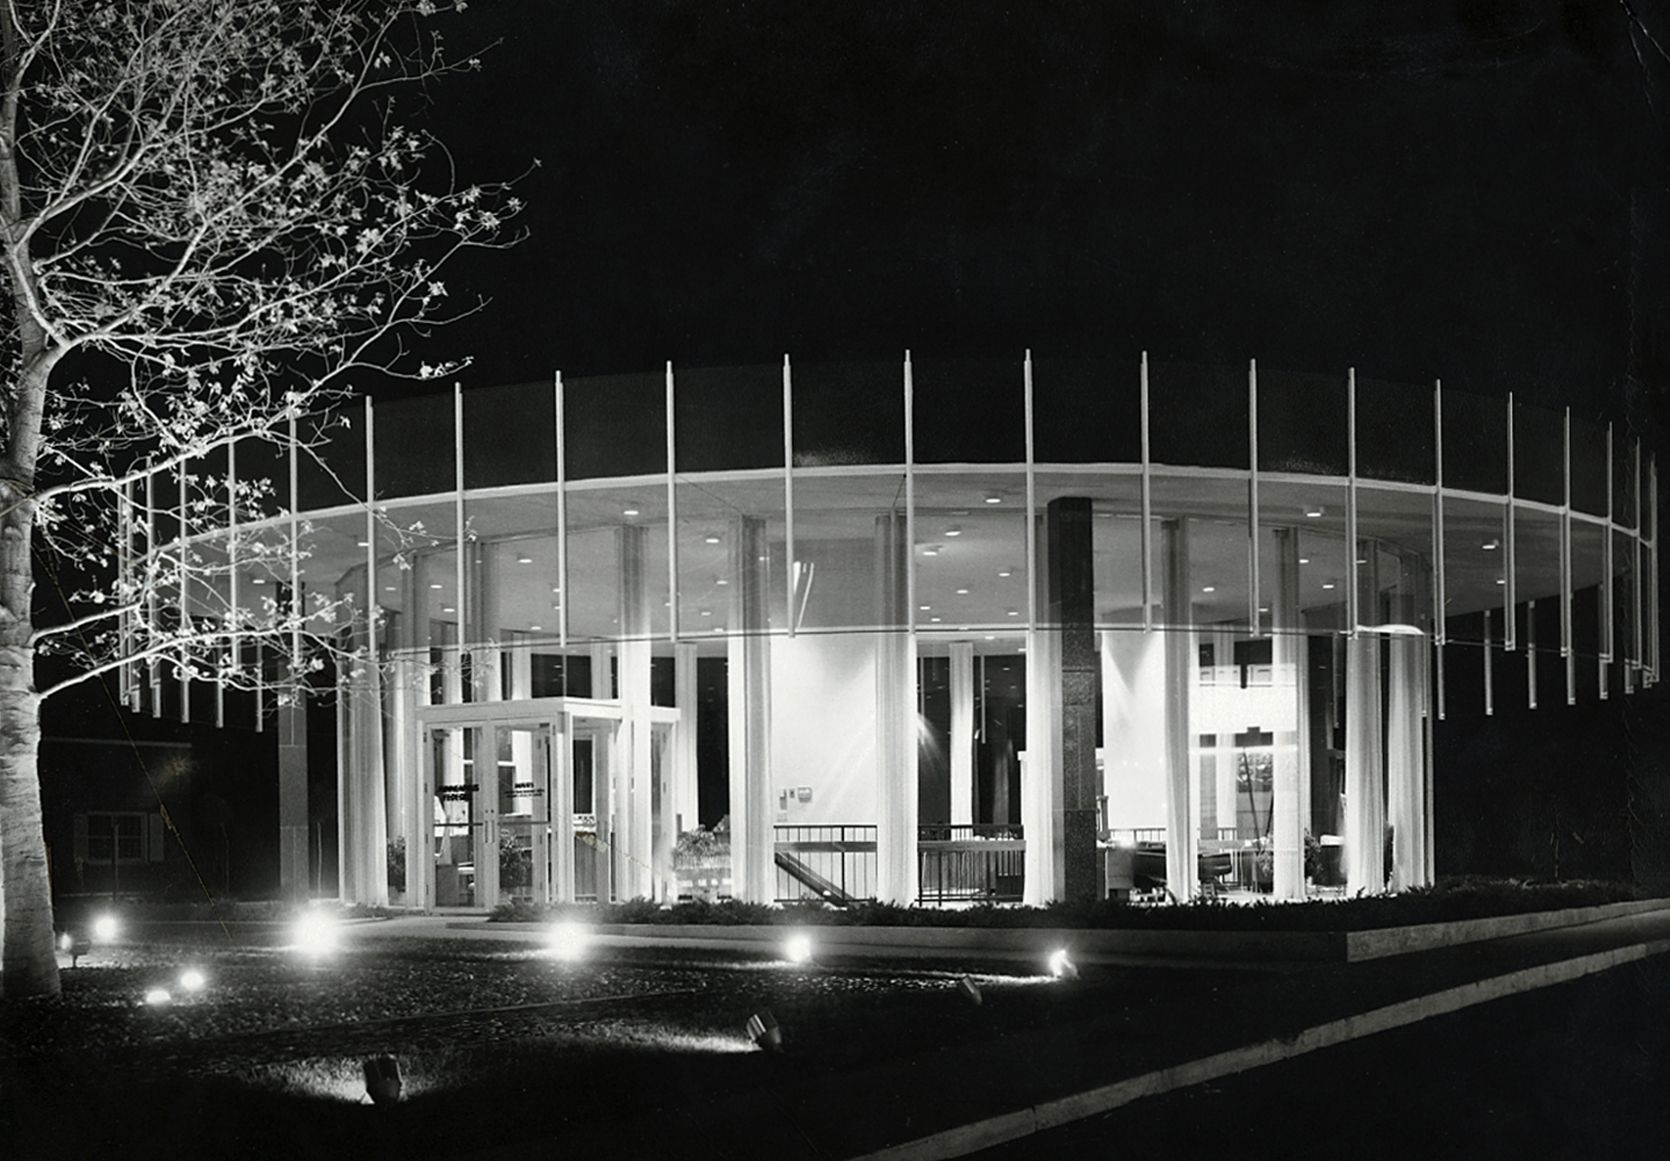 Modernist buildings survive in twin cities suburbs